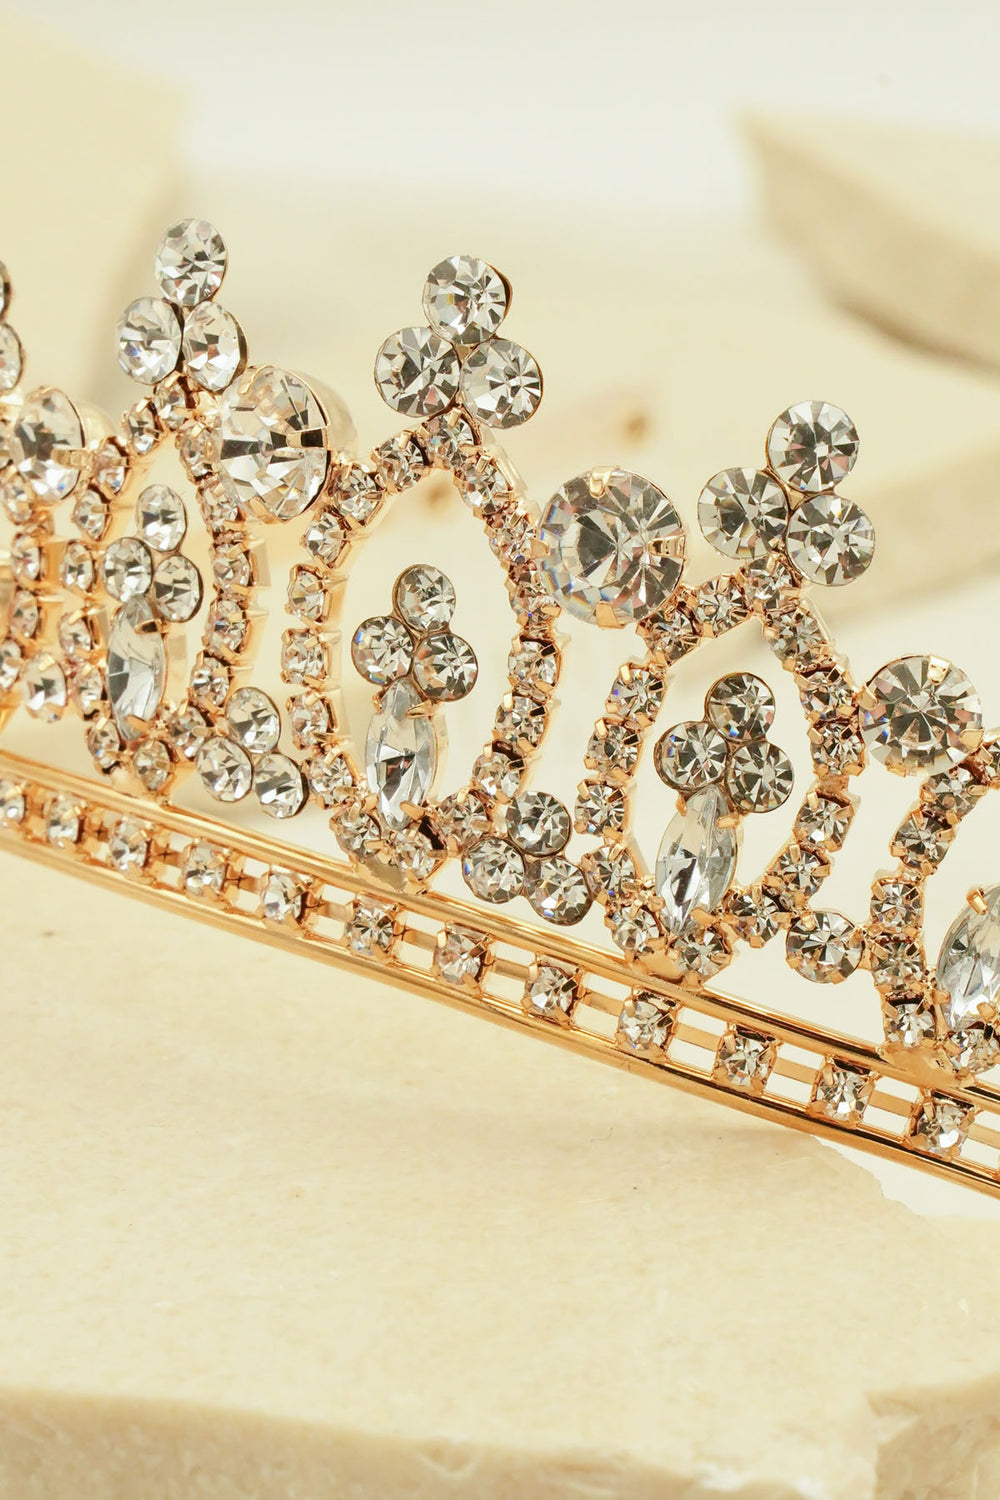 MULTI SHADES CRYSTAL BRIDAL TIARA RHINESTONES CROWN WITH COMB FOR BRIDAL WEDDING BY NARIANNA